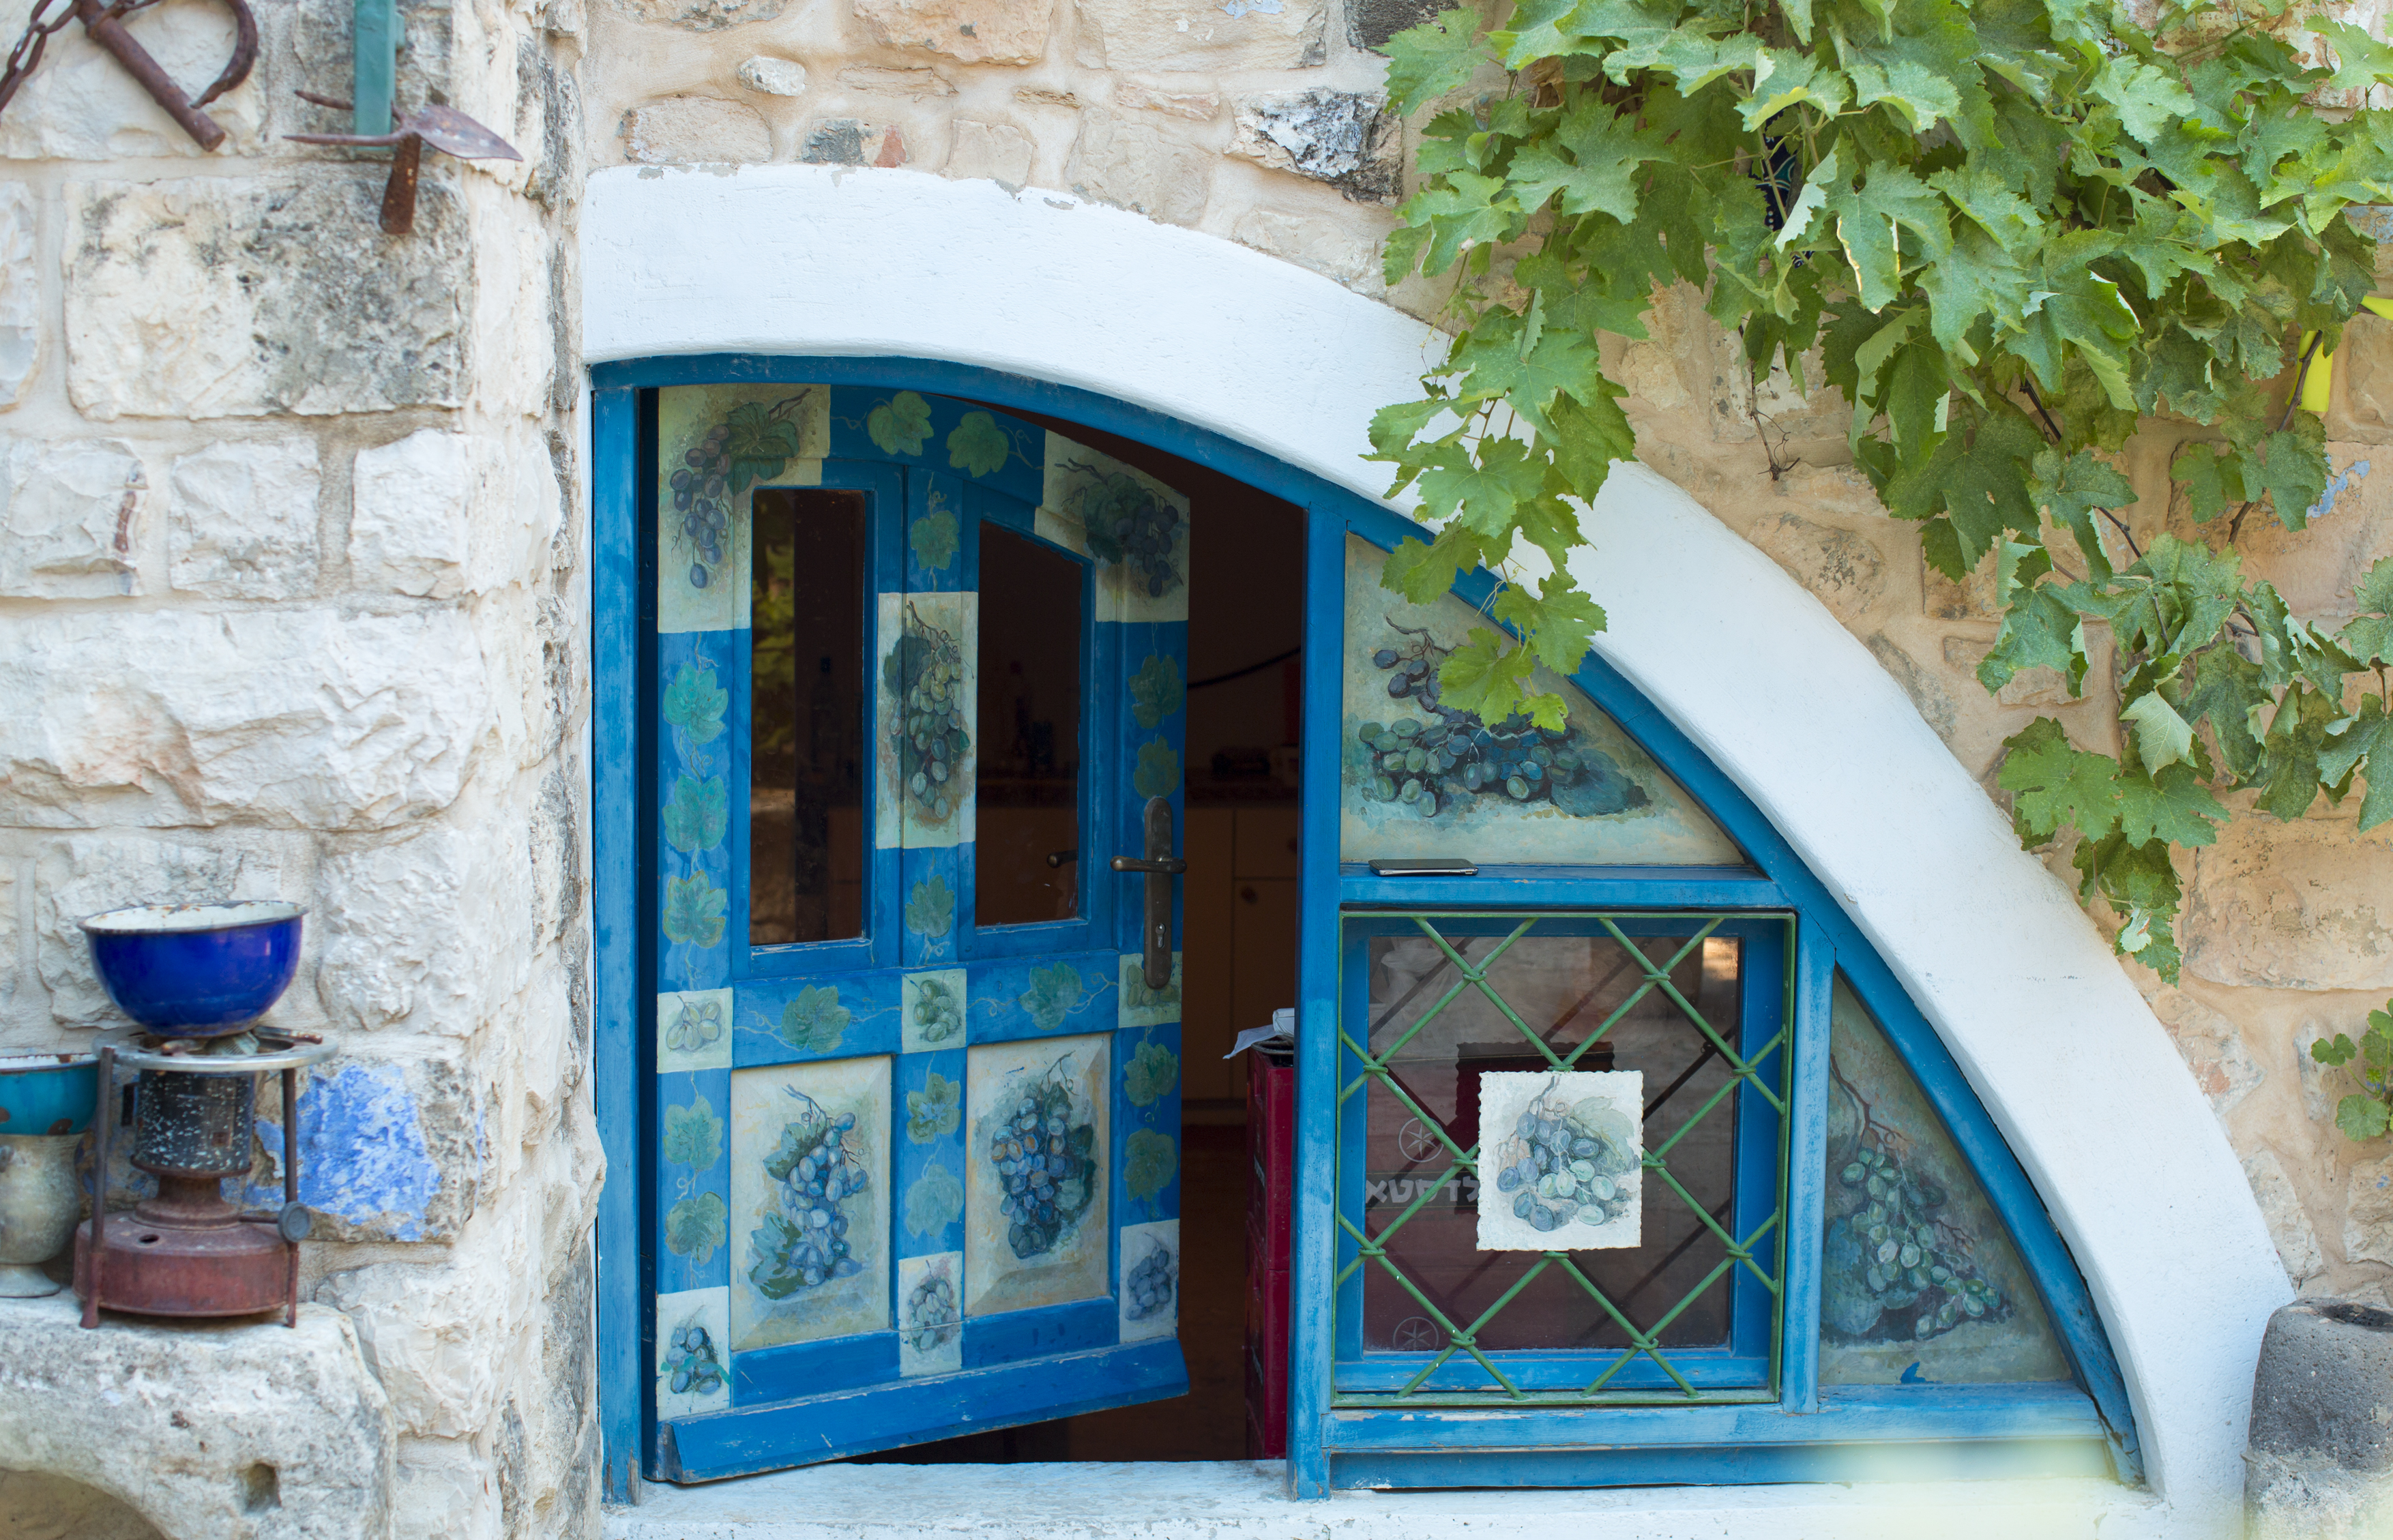 Tzfat Gallery of Mystical Art Tsfat, Safed (Tzfat) The Cradle of Kabbalah - InSite Israel tours